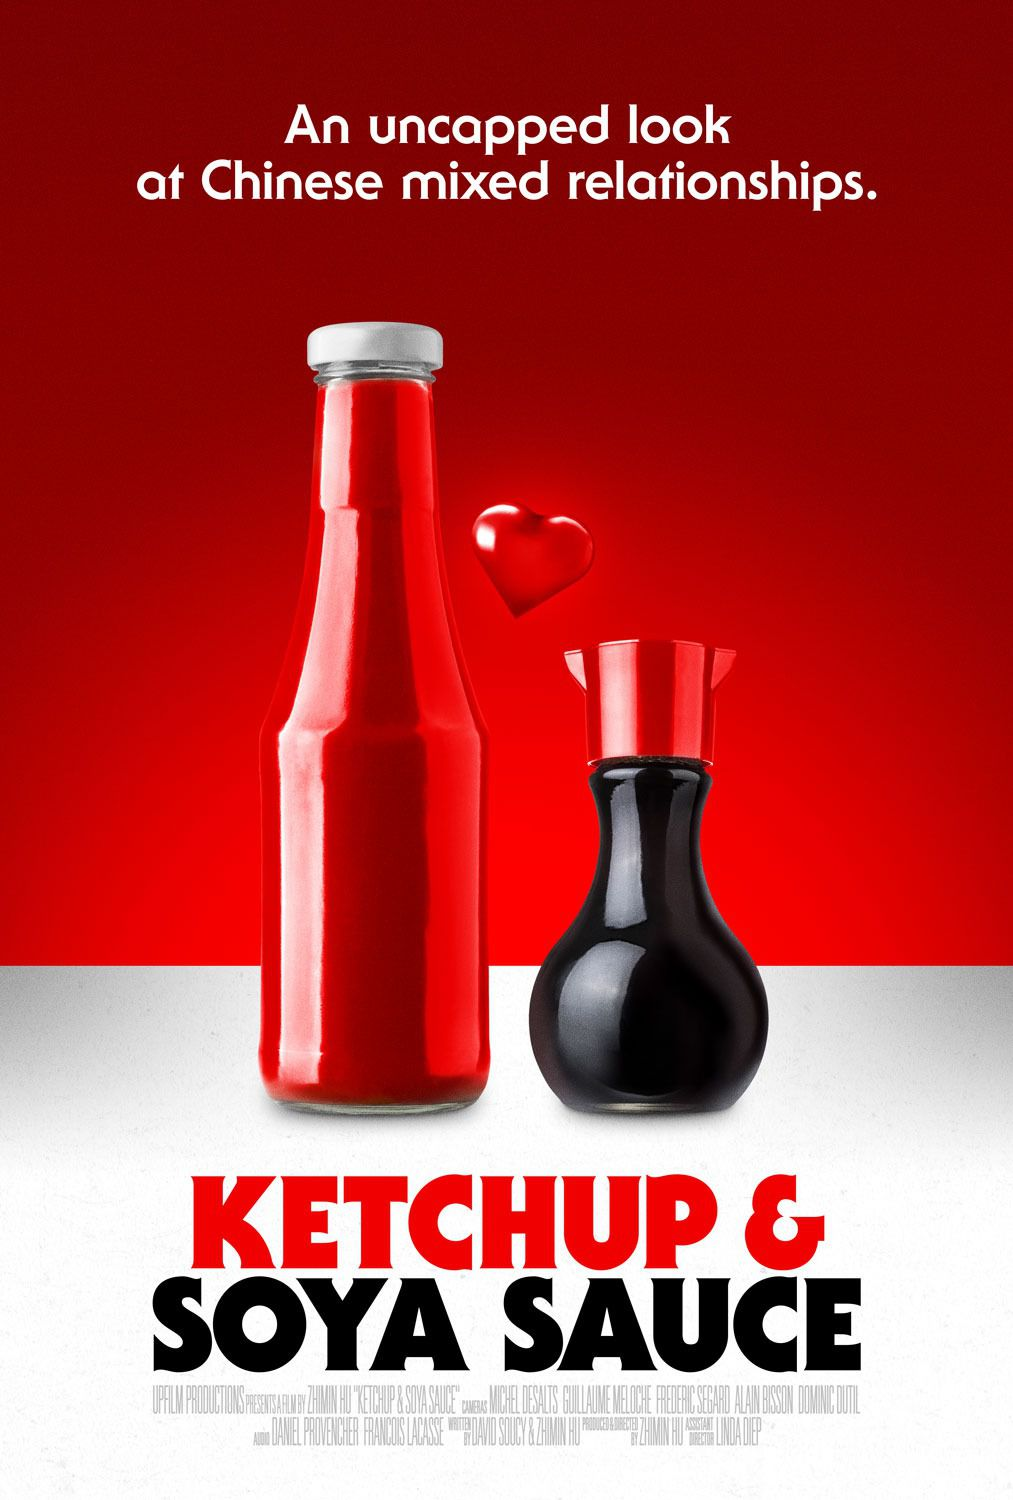 Ketchup and Soya Sauce - uncapped look at Chinese mixed relationships - film poster 2019